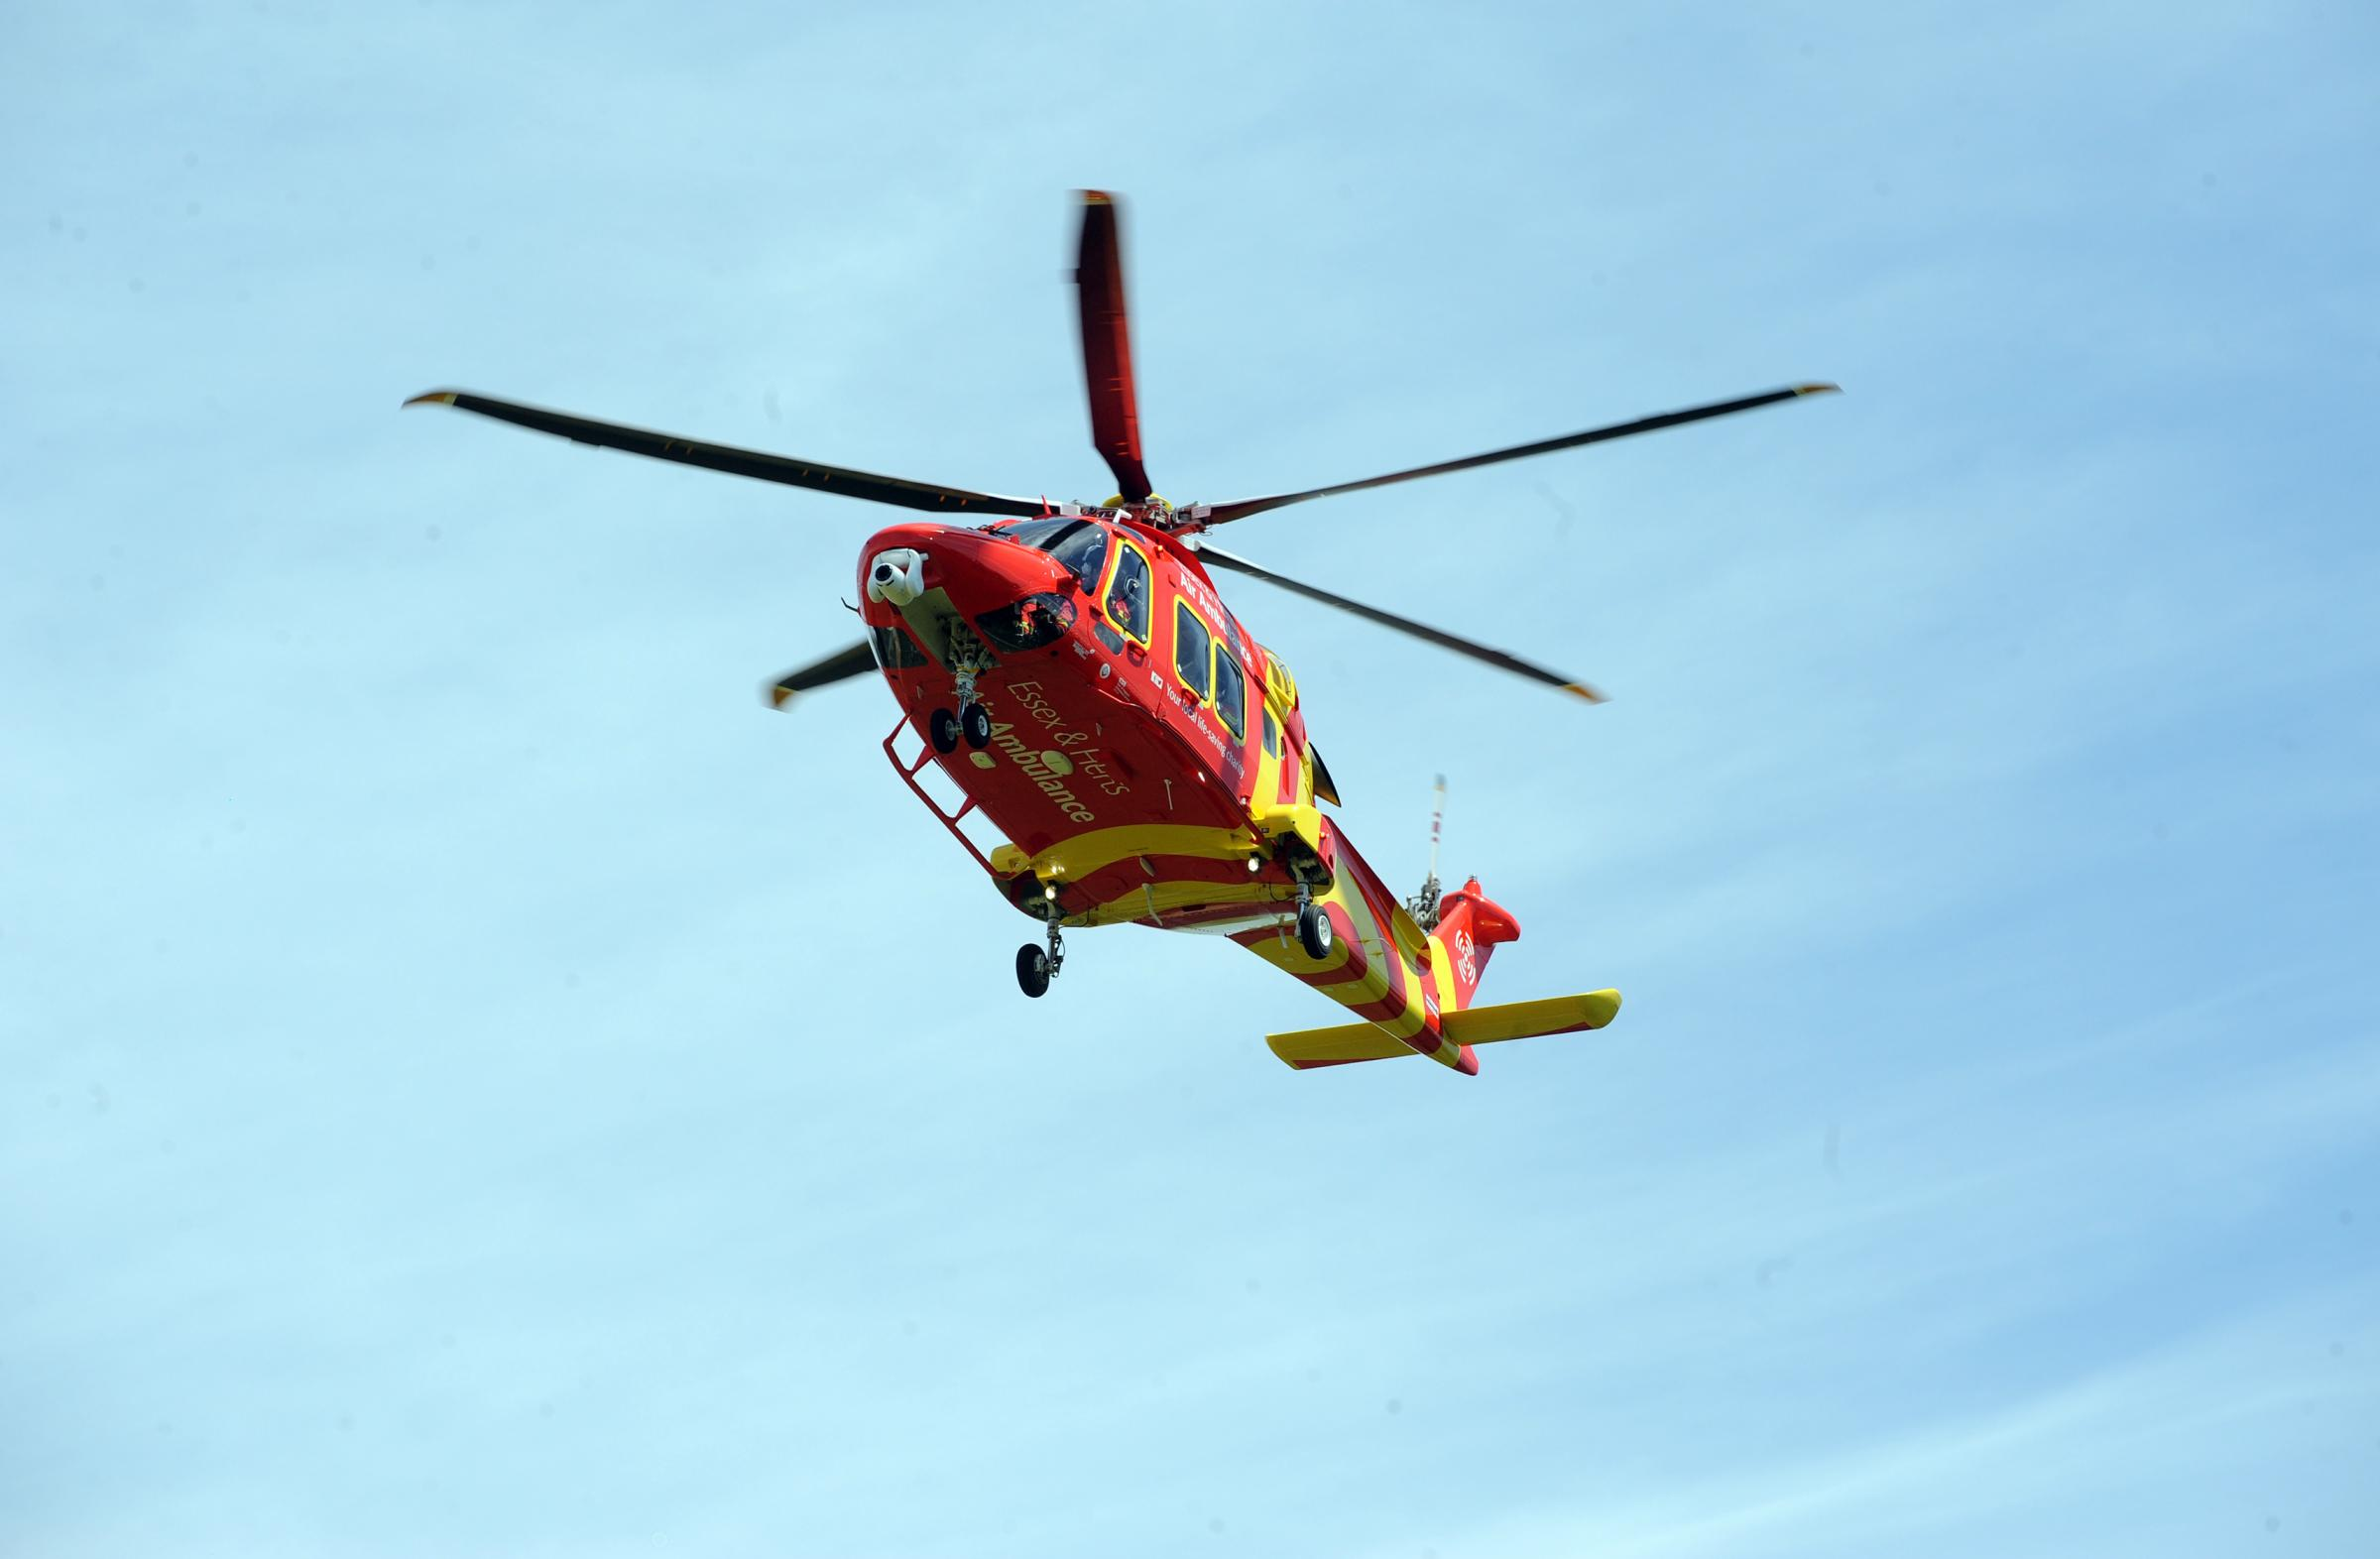 The Air Ambulance was called to take the man to hospital